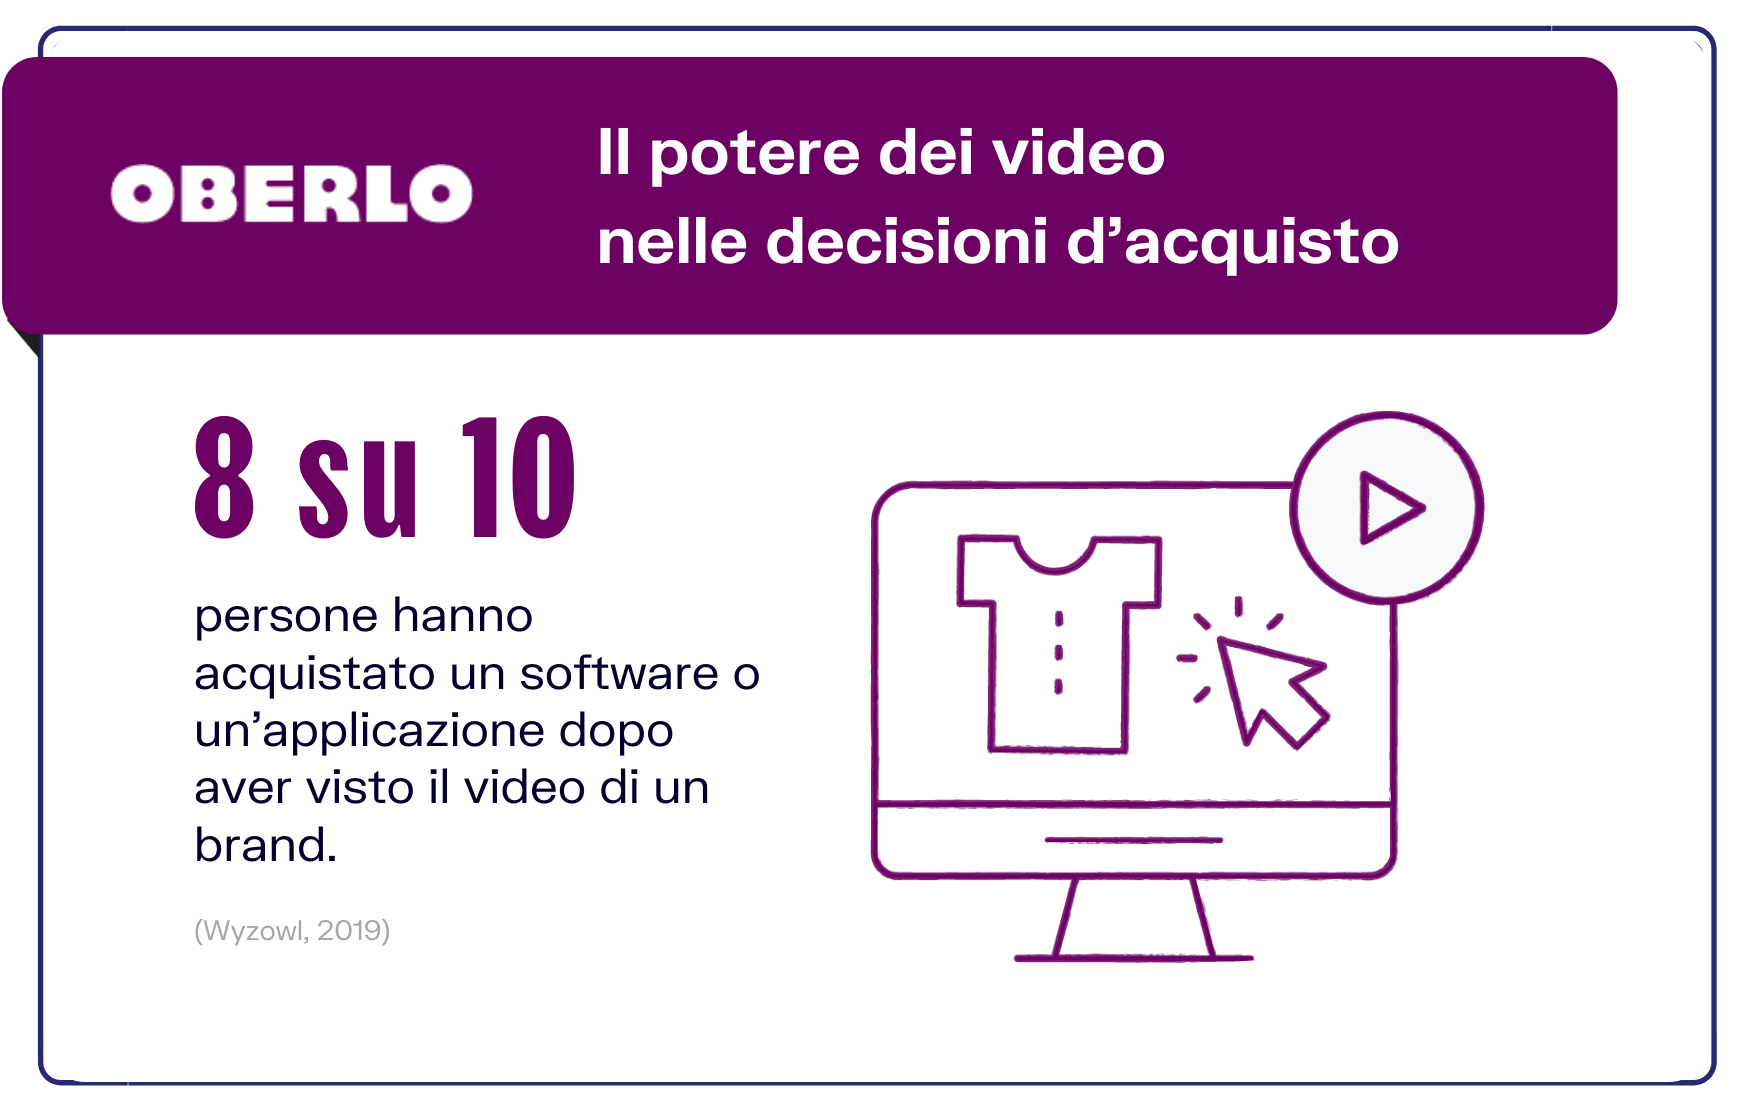 statistiche video marketing decisioni d'acquisto